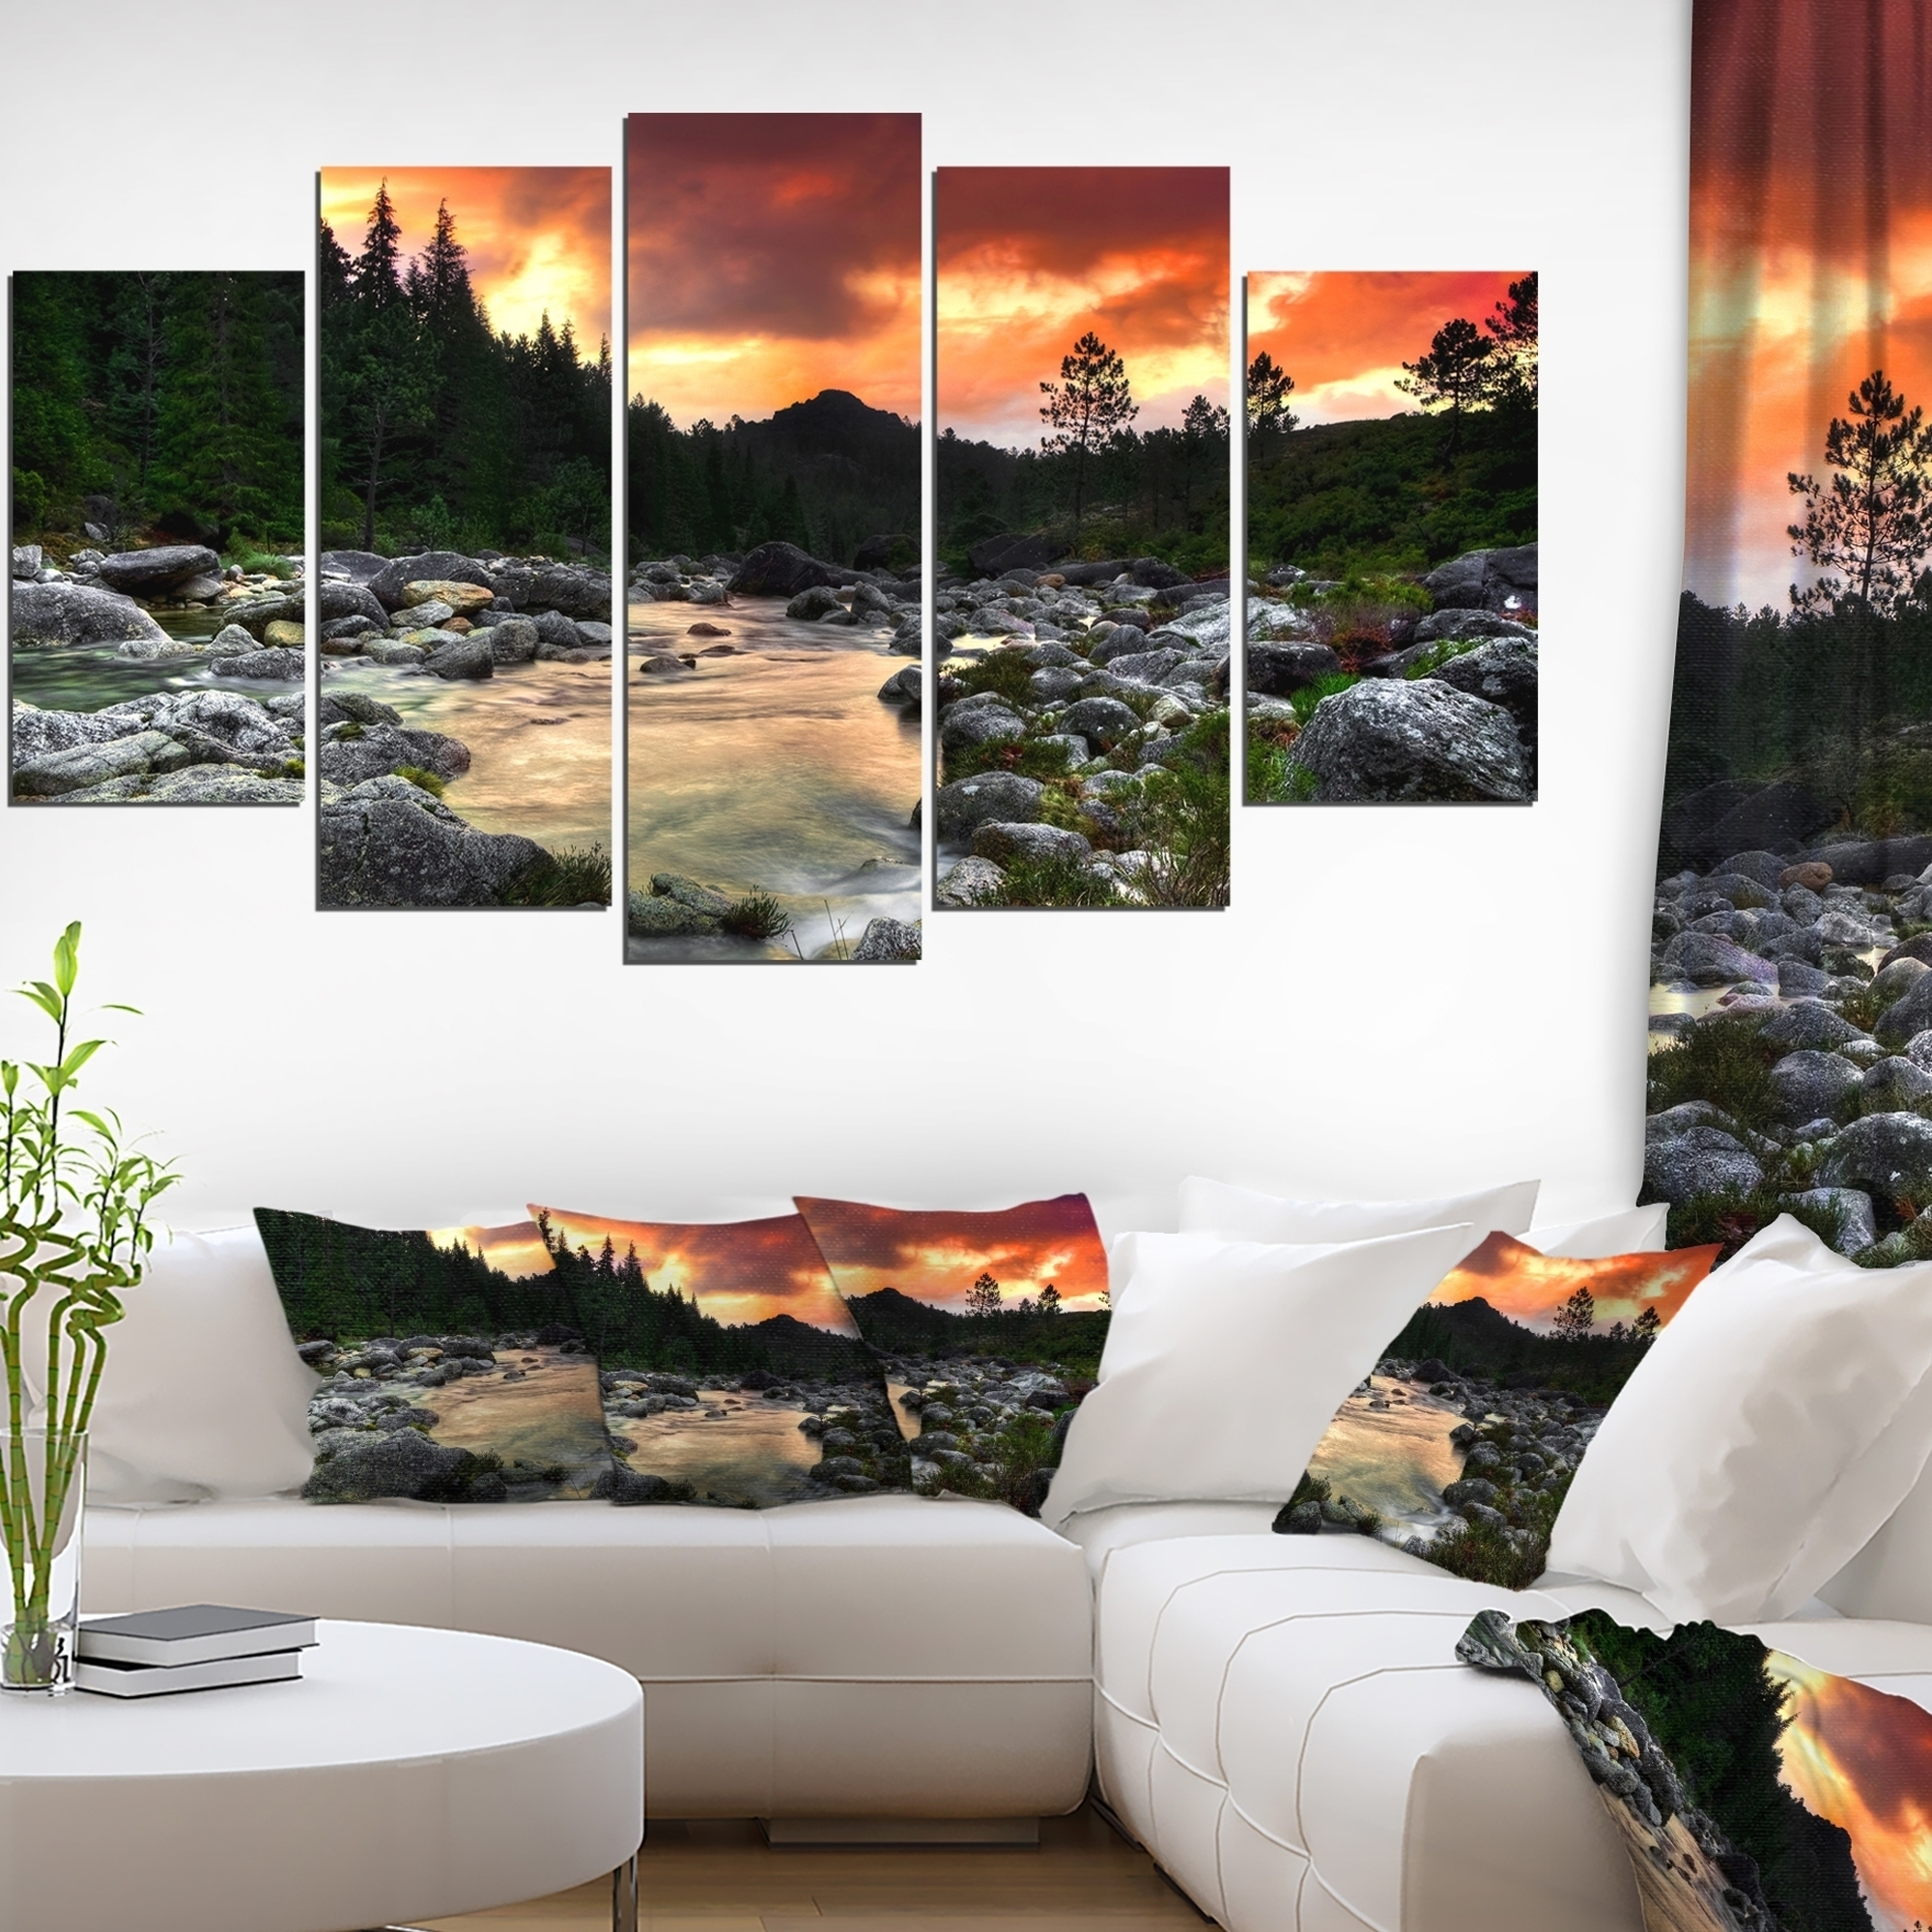 Extra Large Wall Art For Well Known Shop Rocky Mountain River At Sunset – Extra Large Wall Art Landscape (View 6 of 15)